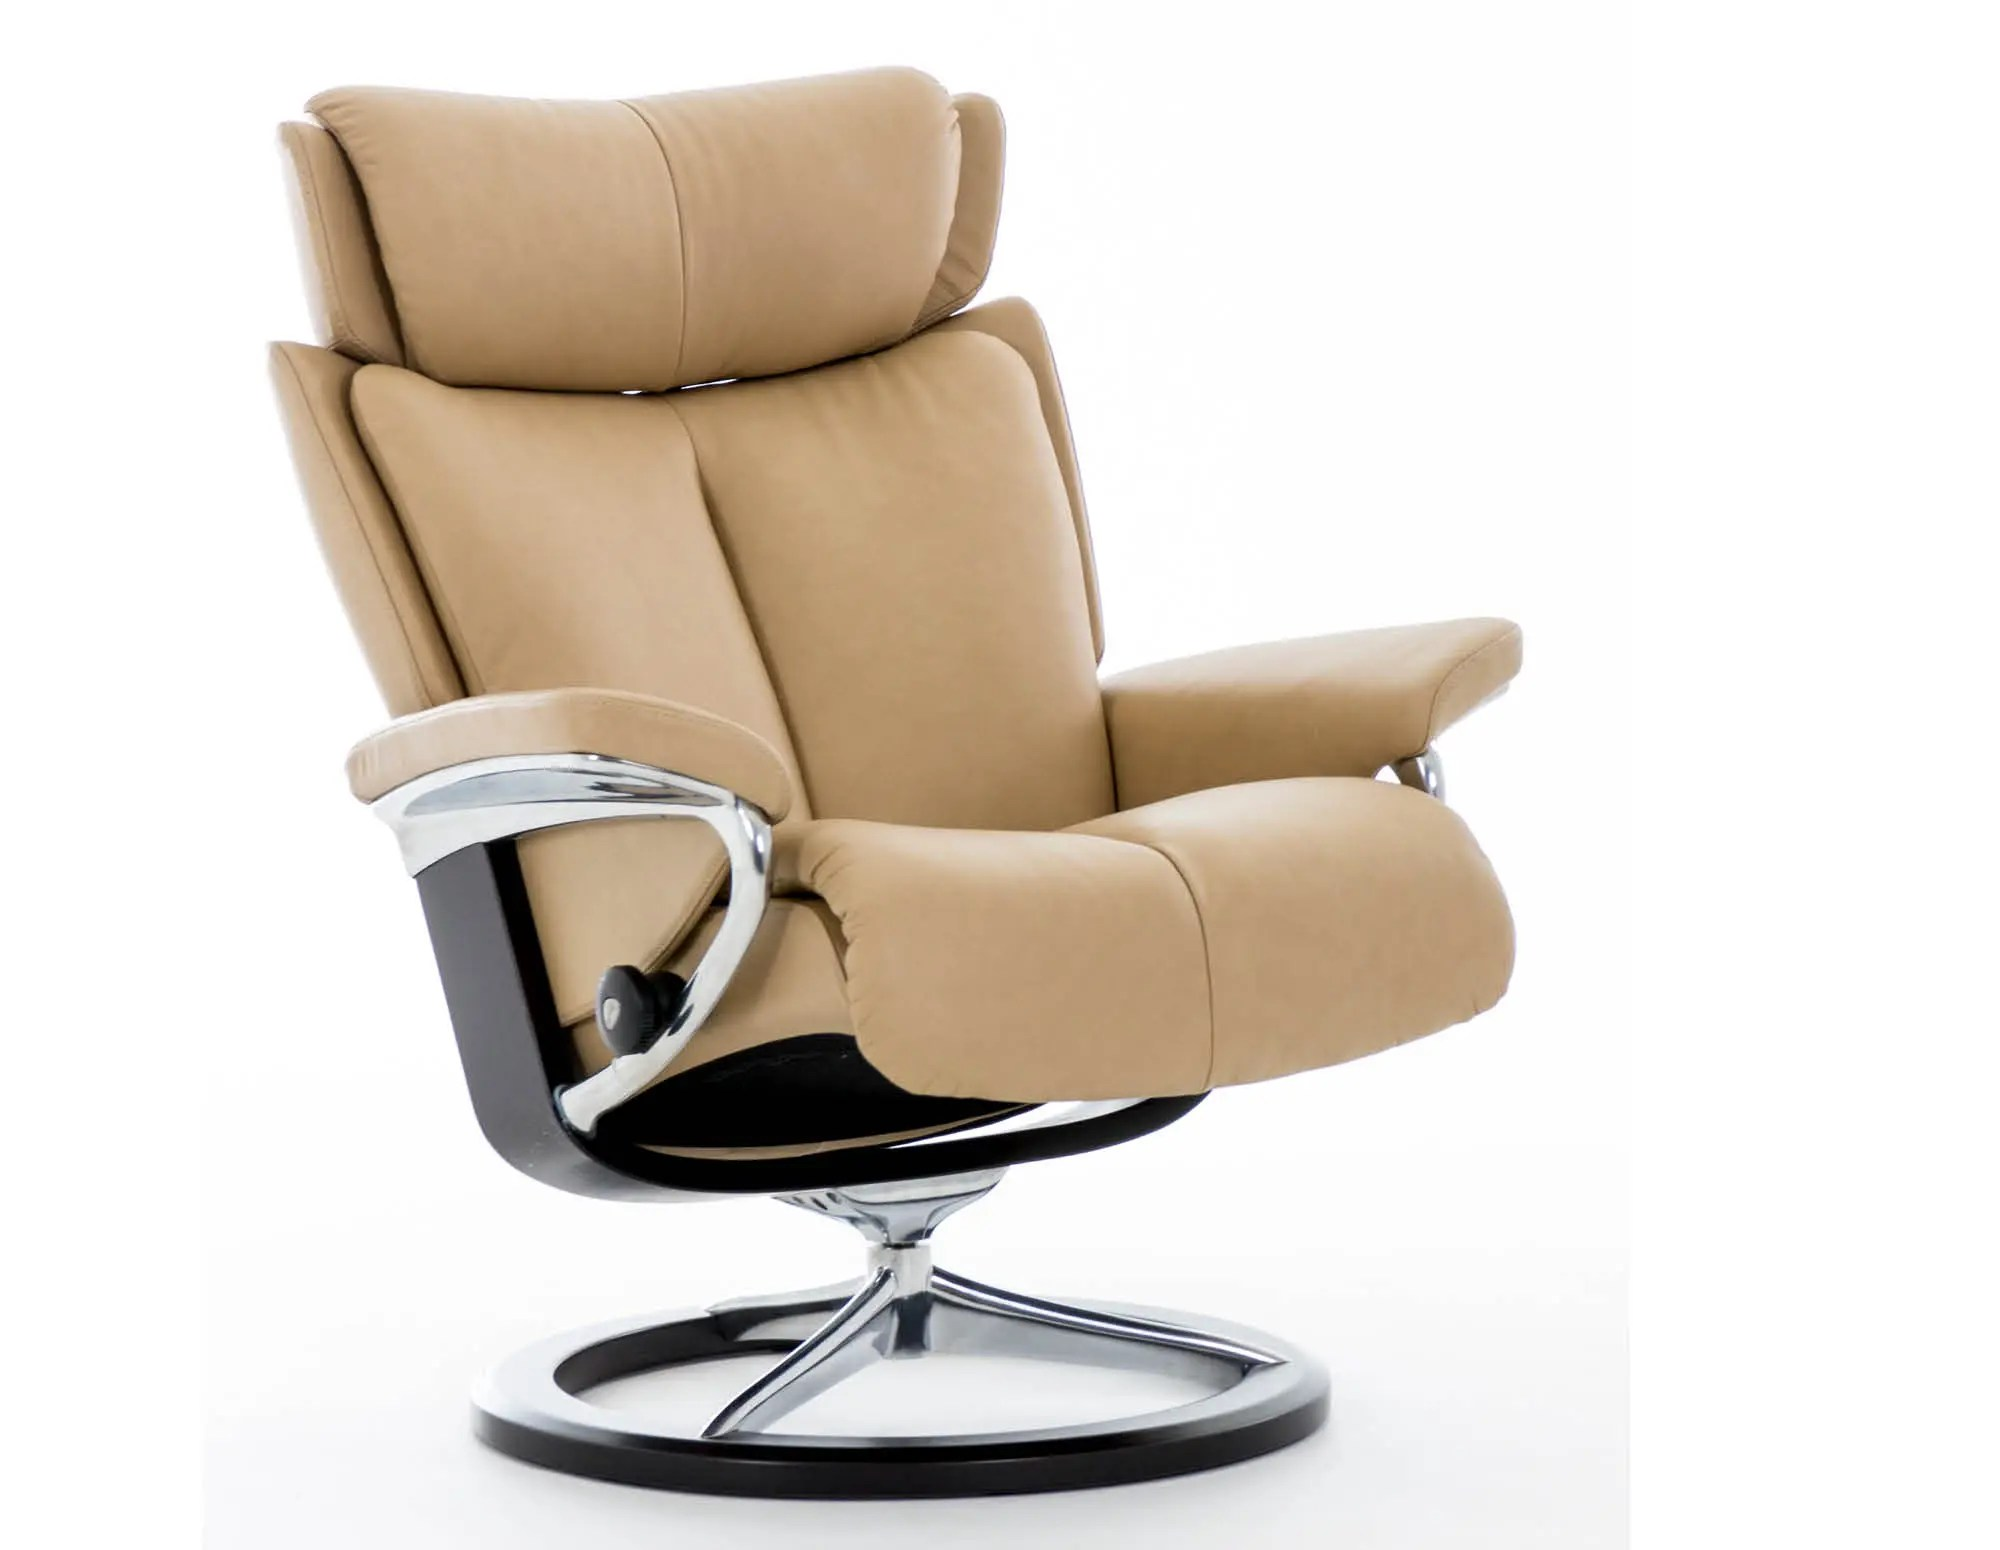 Stressless Magic Sessel In Leder Noblesse Home Company Möbel